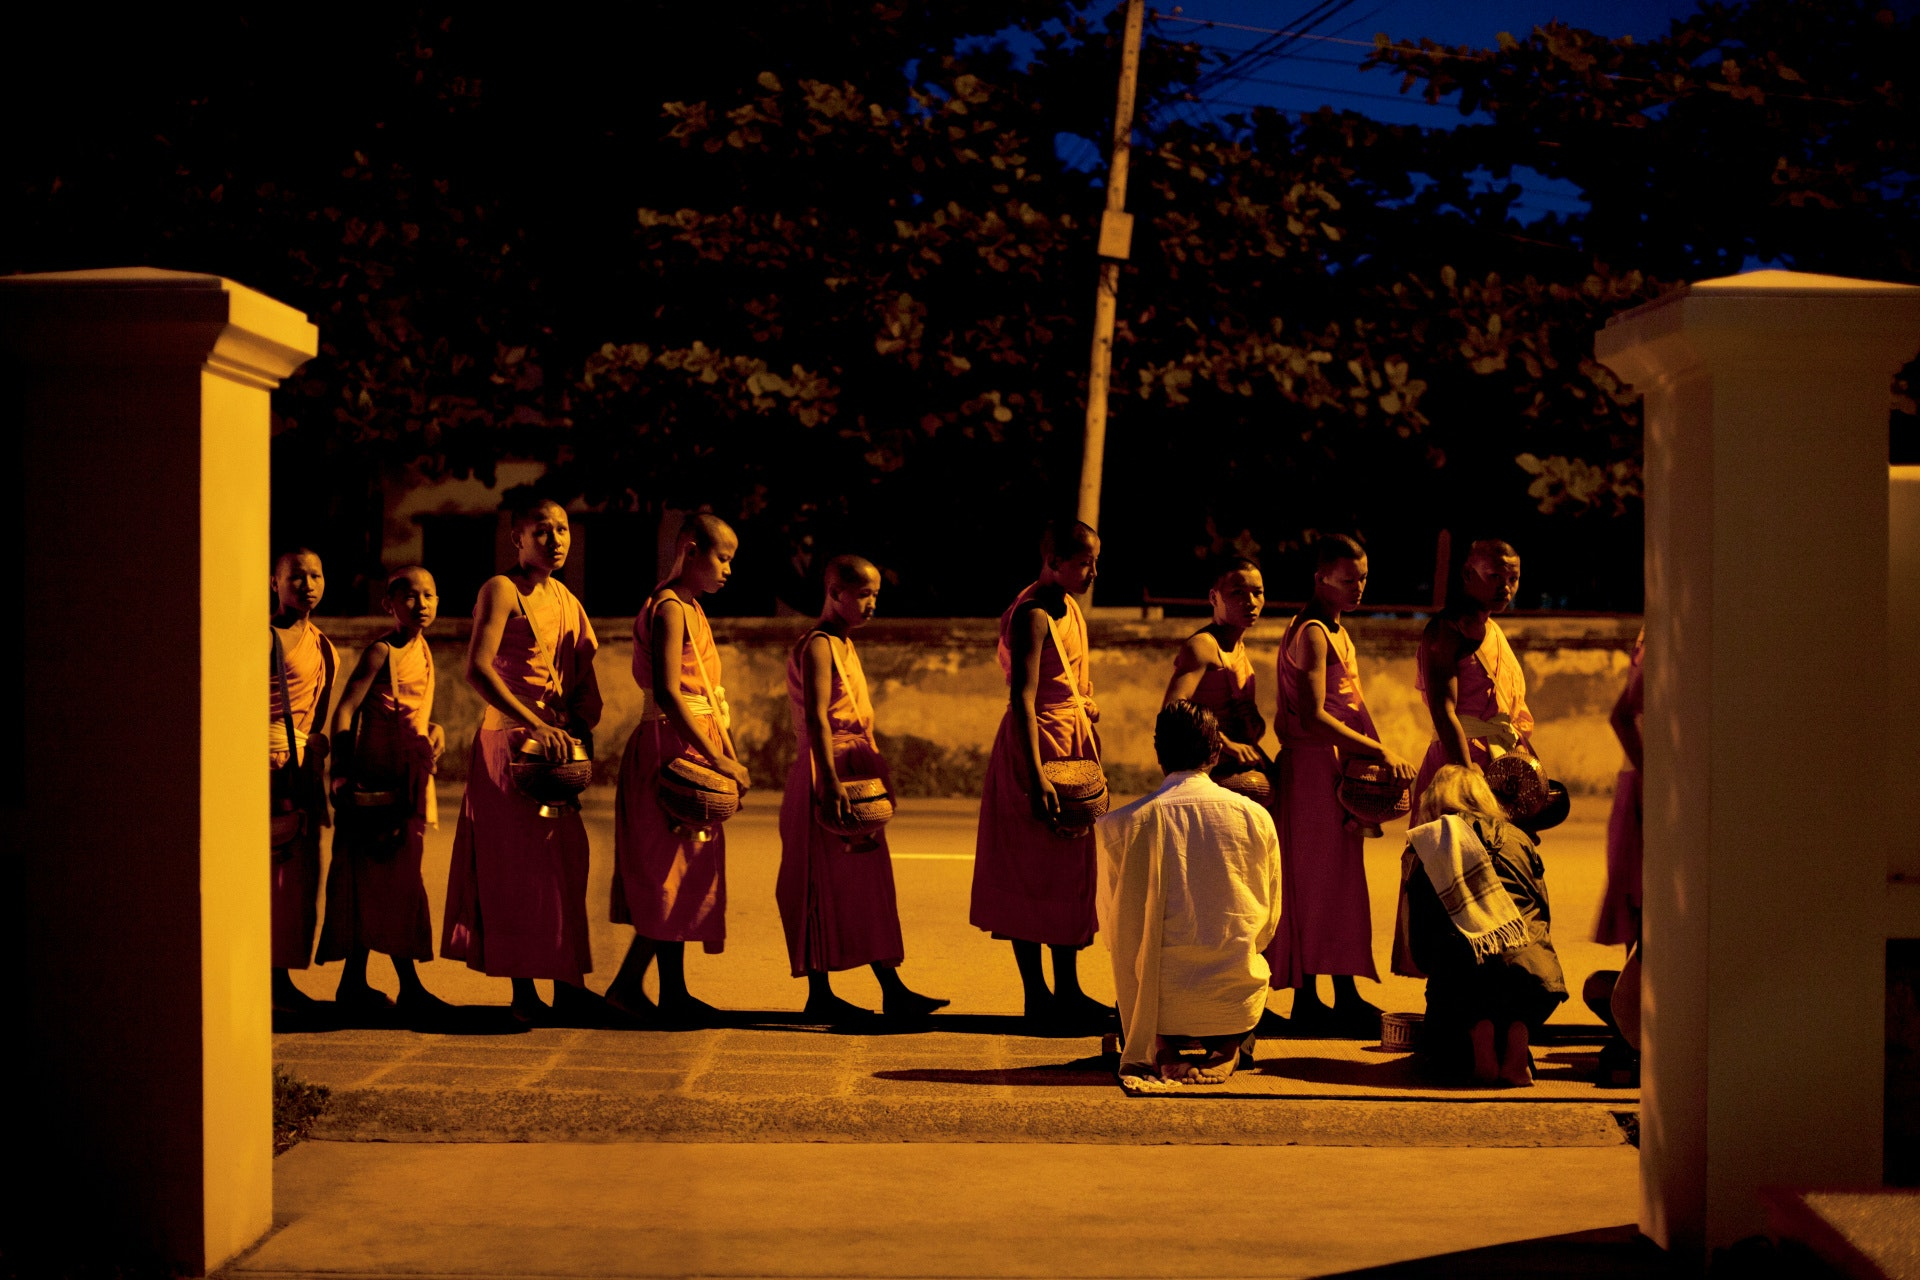 Some monks participating in the predawn tak bat ritual pass right in front of Amantaka.